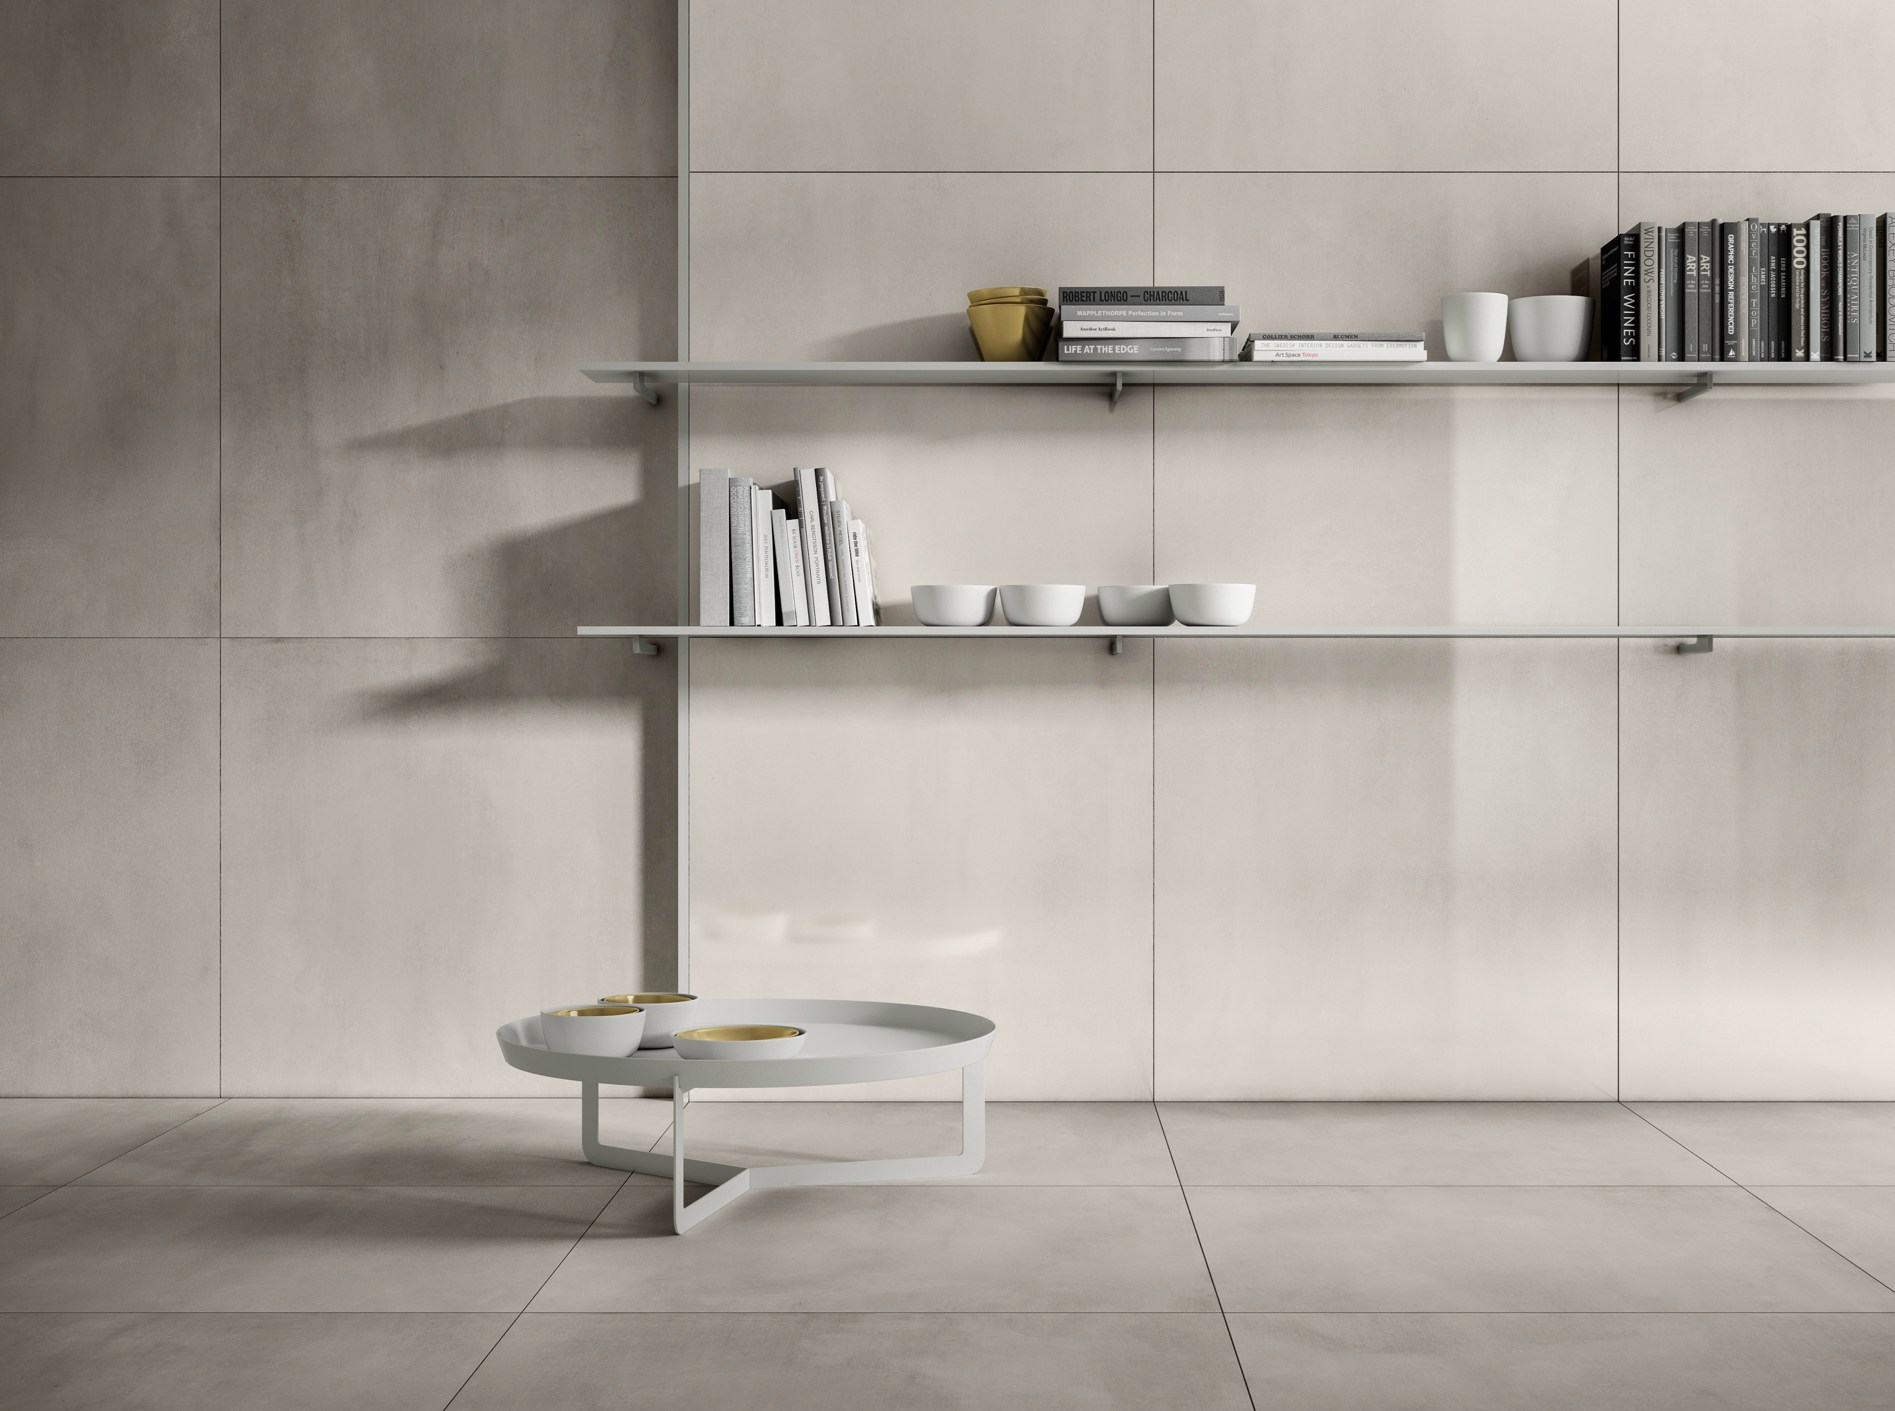 Porcelain stoneware wall floor tiles with metal effect - Piastrelle casalgrande padana ...